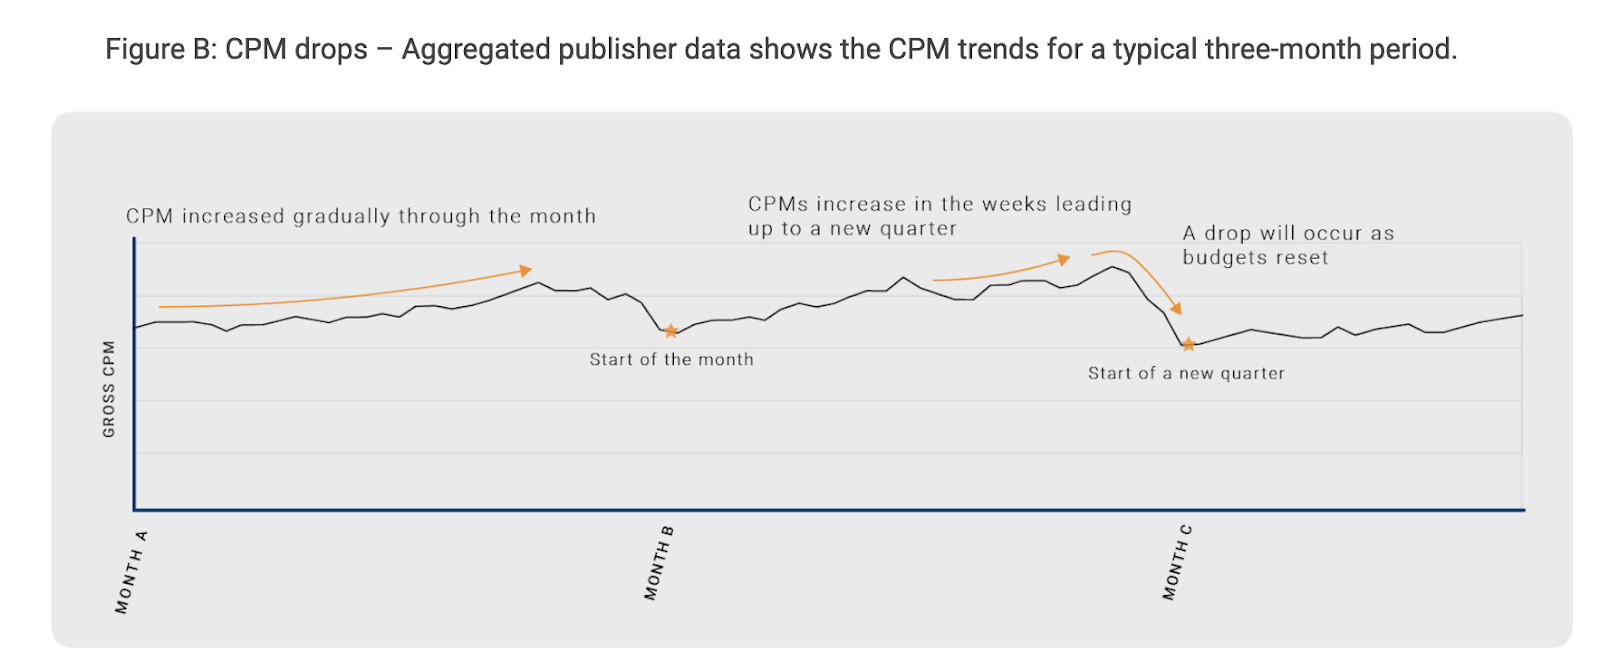 CPMs start each month low and steadily increase towards the end of the month